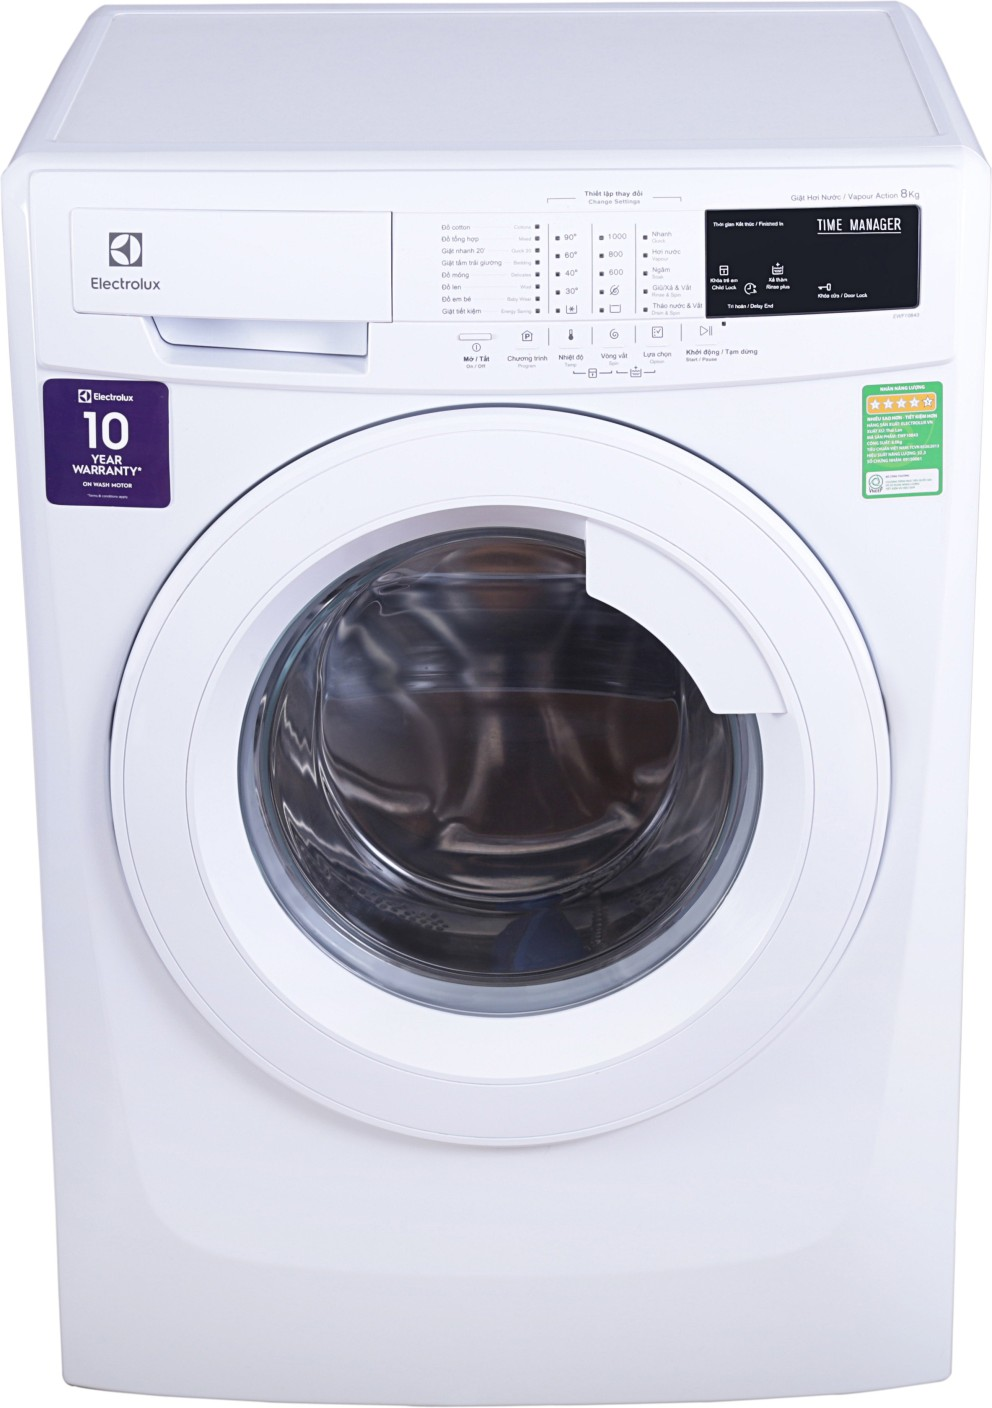 Electrolux 8 Kg Fully Automatic Front Load Washing Machine